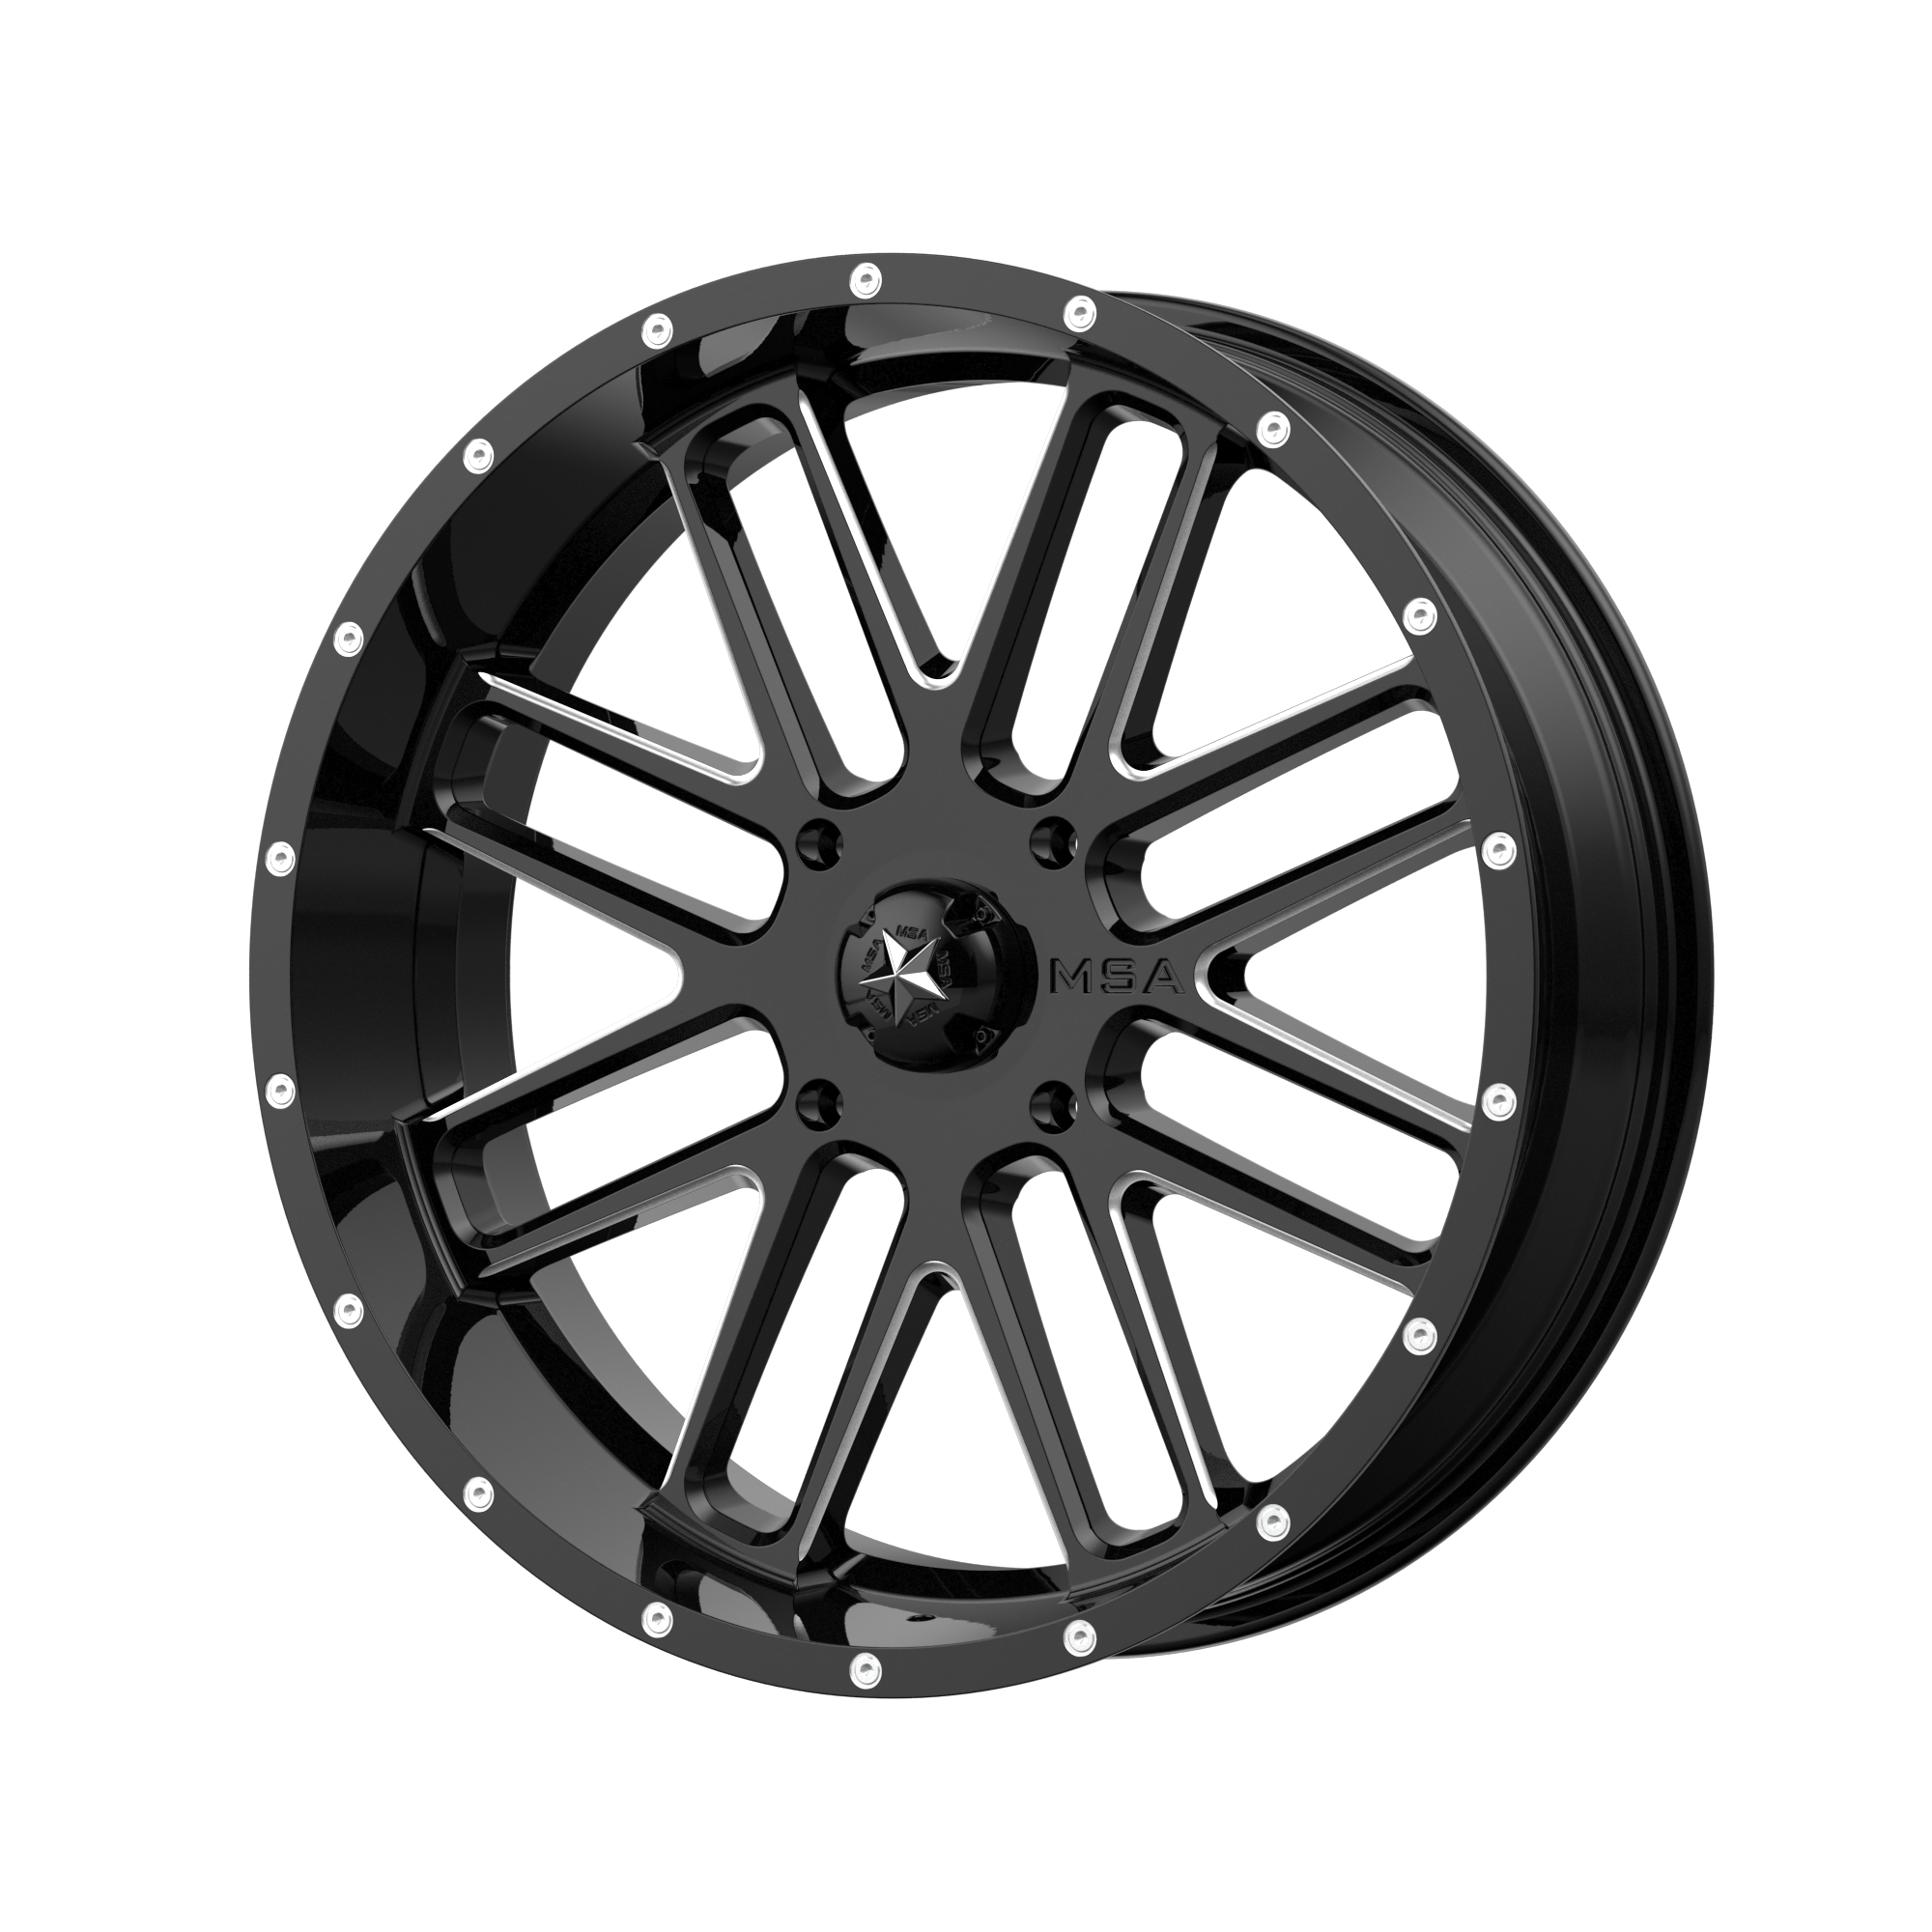 MSA OFFROAD WHEELS BANDIT GLOSS BLACK MILLED